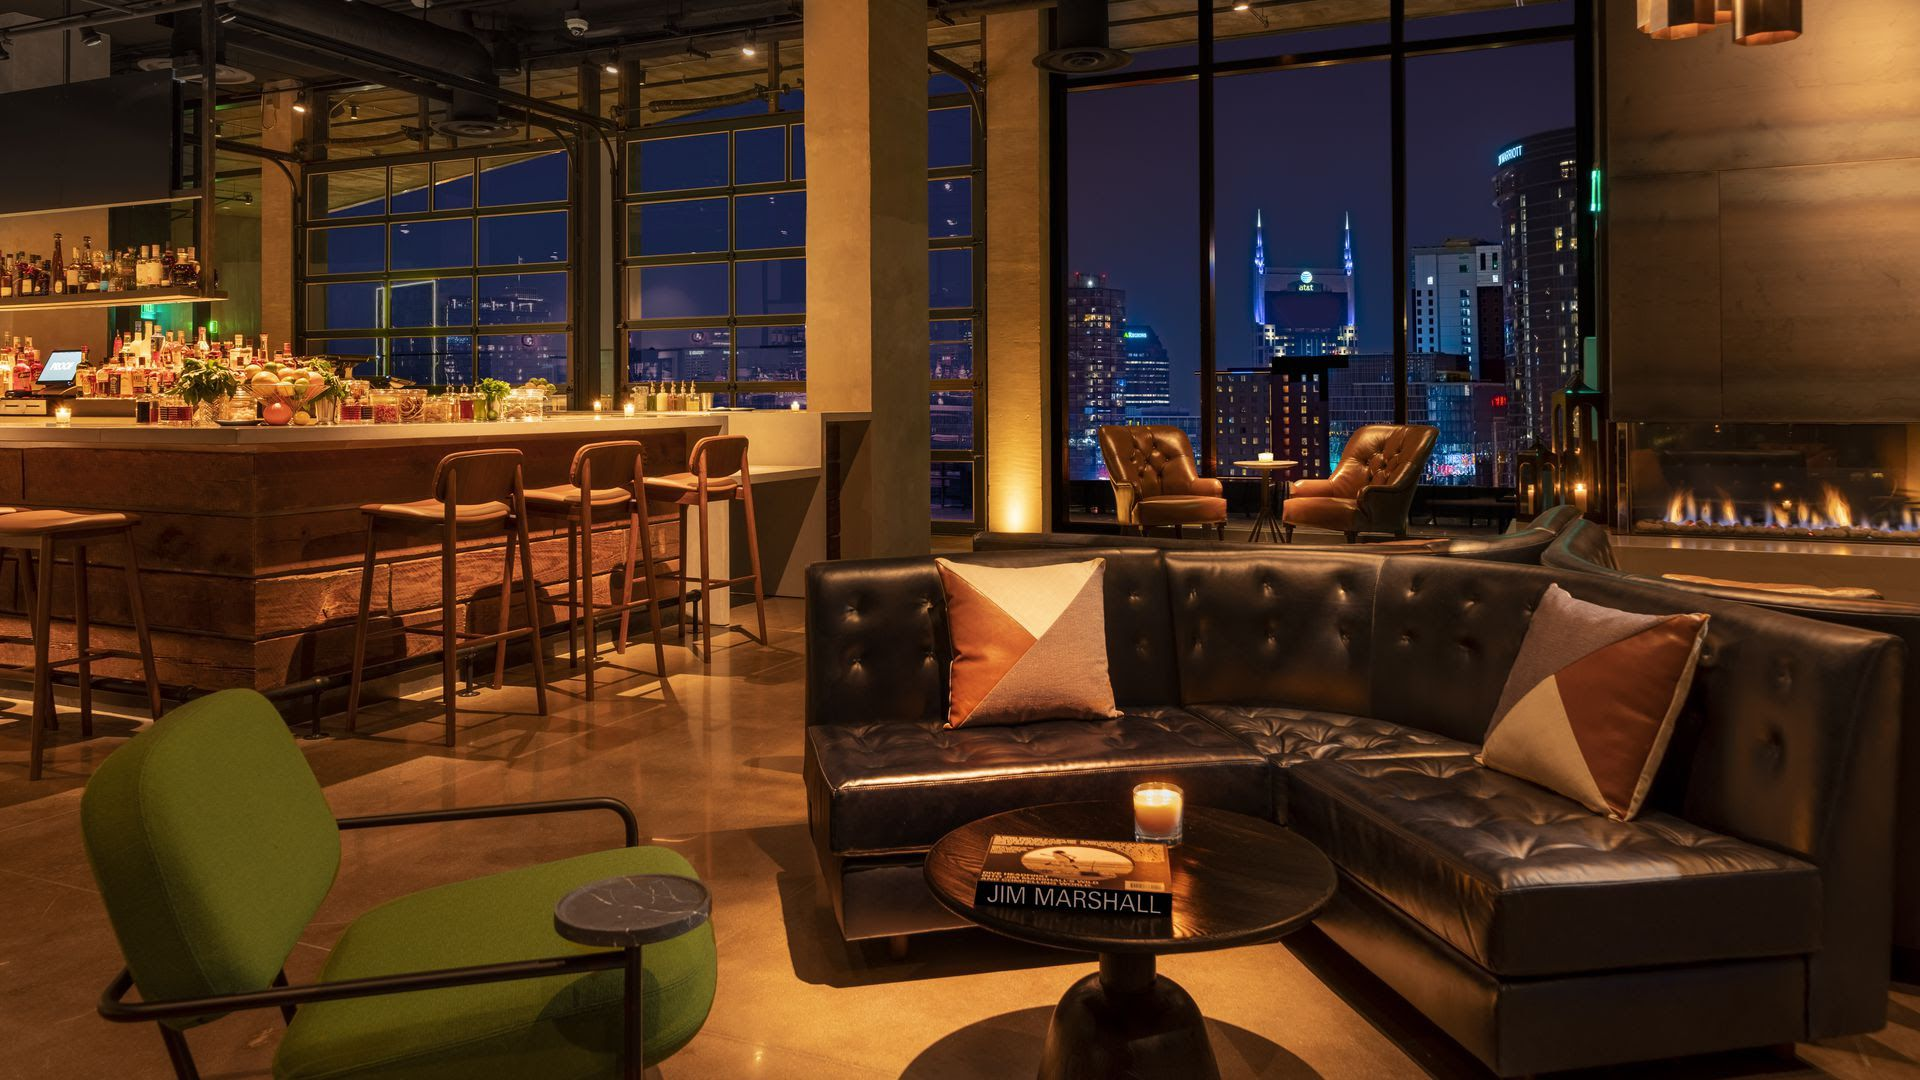 A restaurant and lounge at the W Nashville.